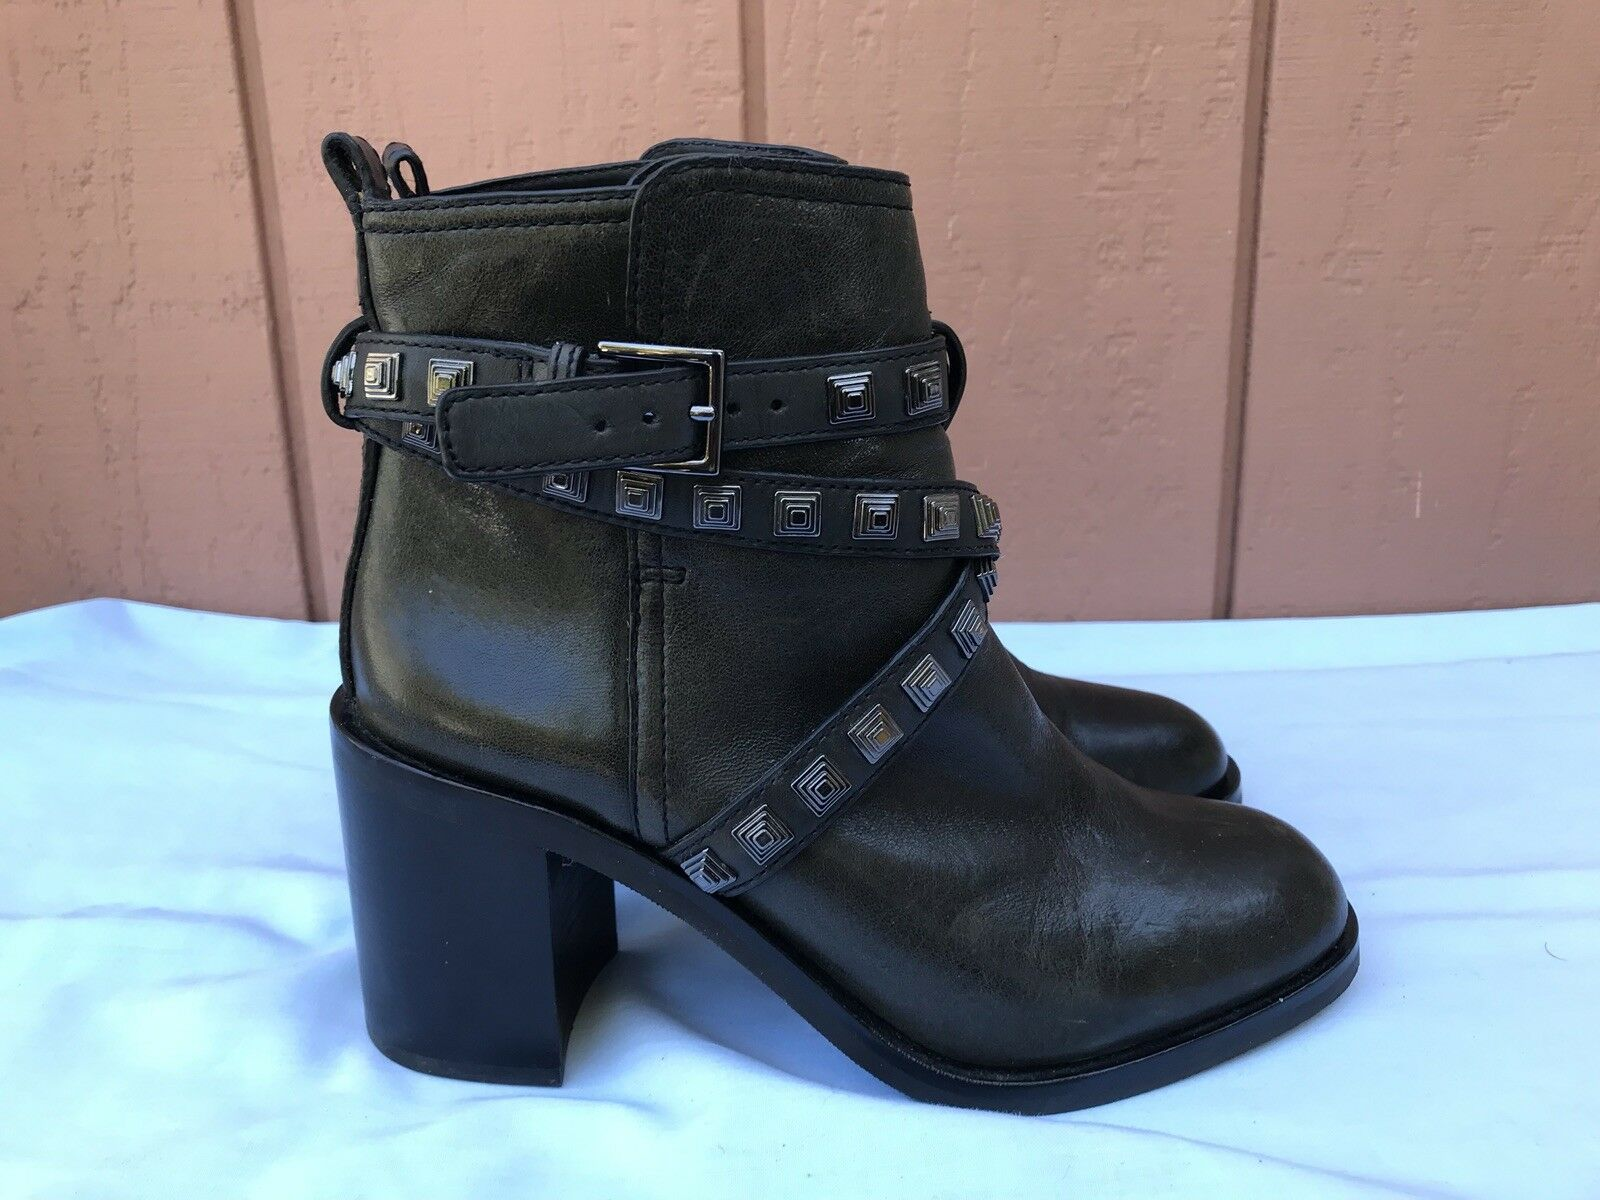 RARE MINT Tory Burch Burch Tory US 8.5 Faded Black Leather Studded Biker Ankle Boot $595 A9 f08d77